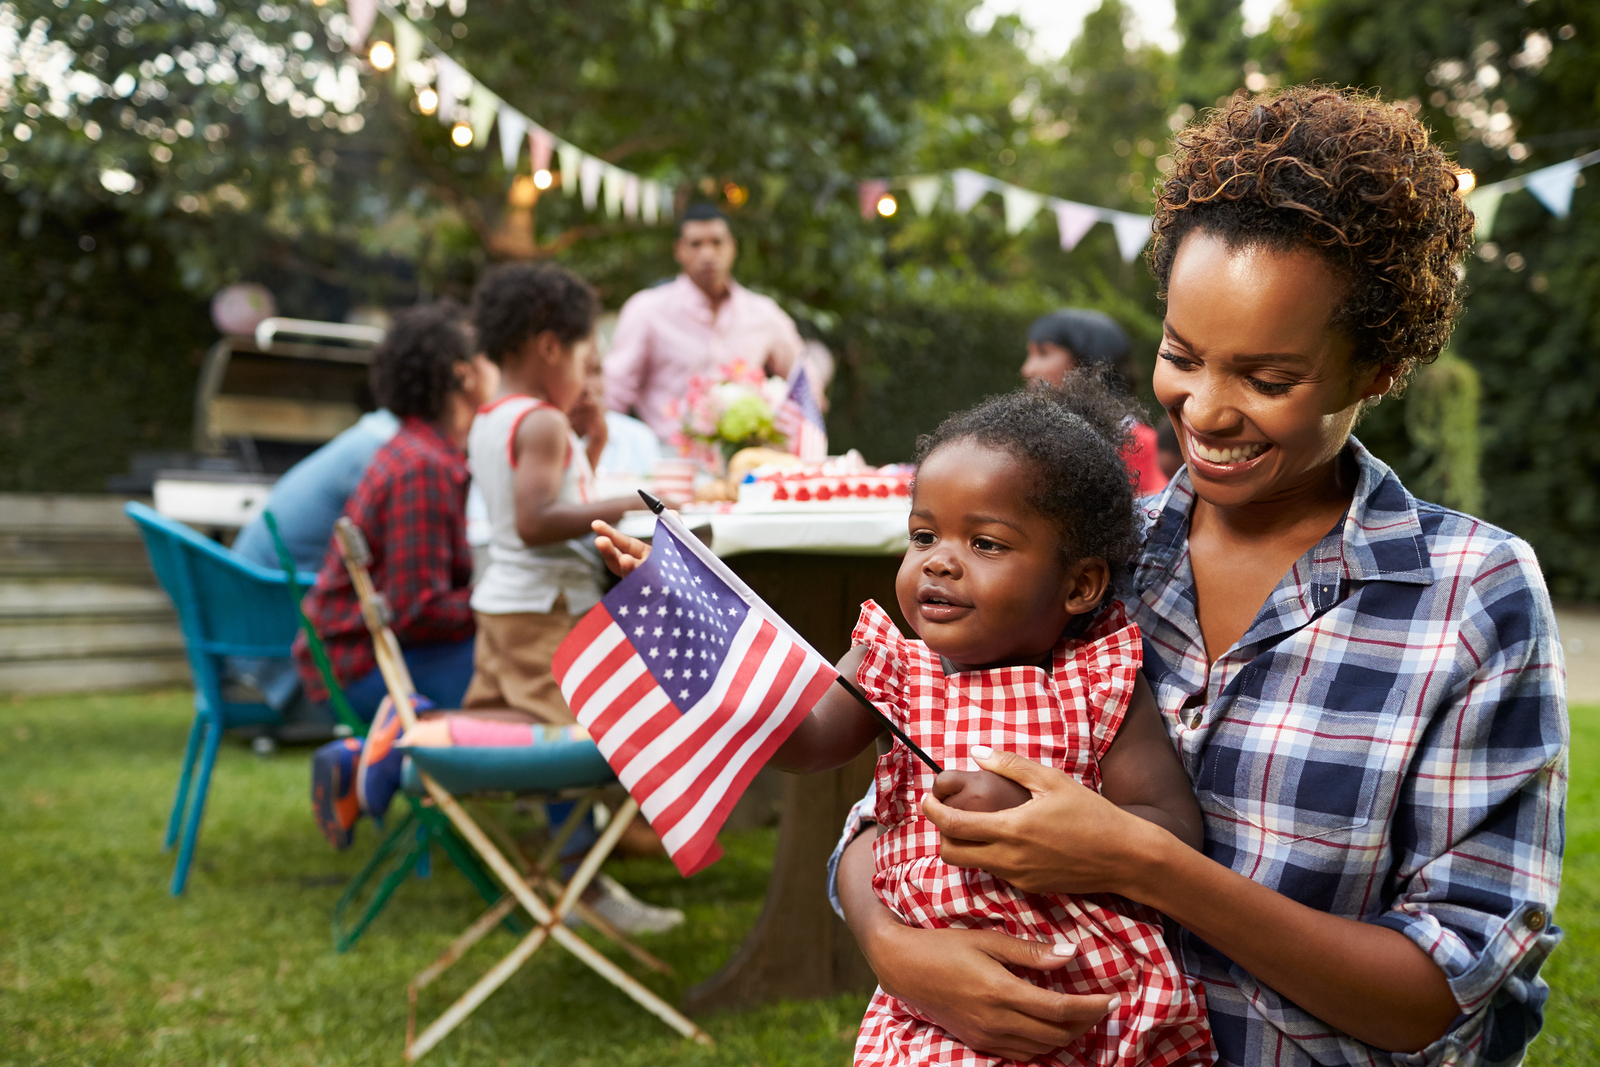 We've gathered some fun things for you to share in the July 4th celebrations!